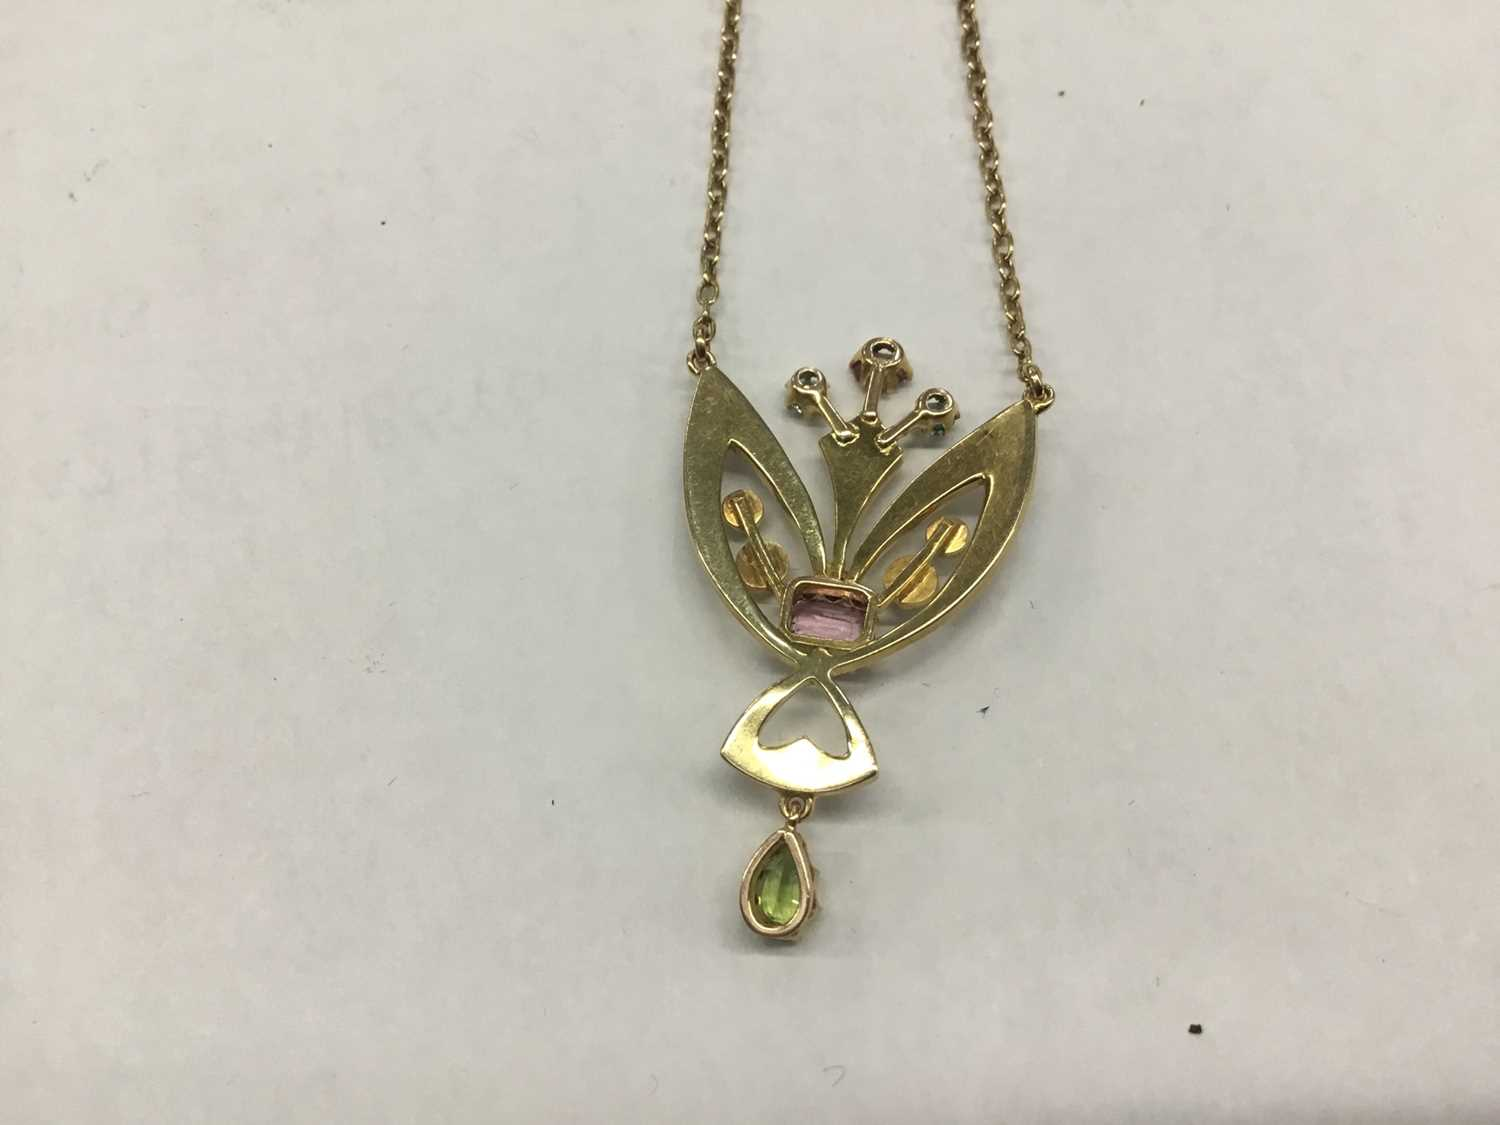 Edwardian 15ct gold peridot, pink stone, blue stone and seed pearl pendant necklace on chain - Image 2 of 3